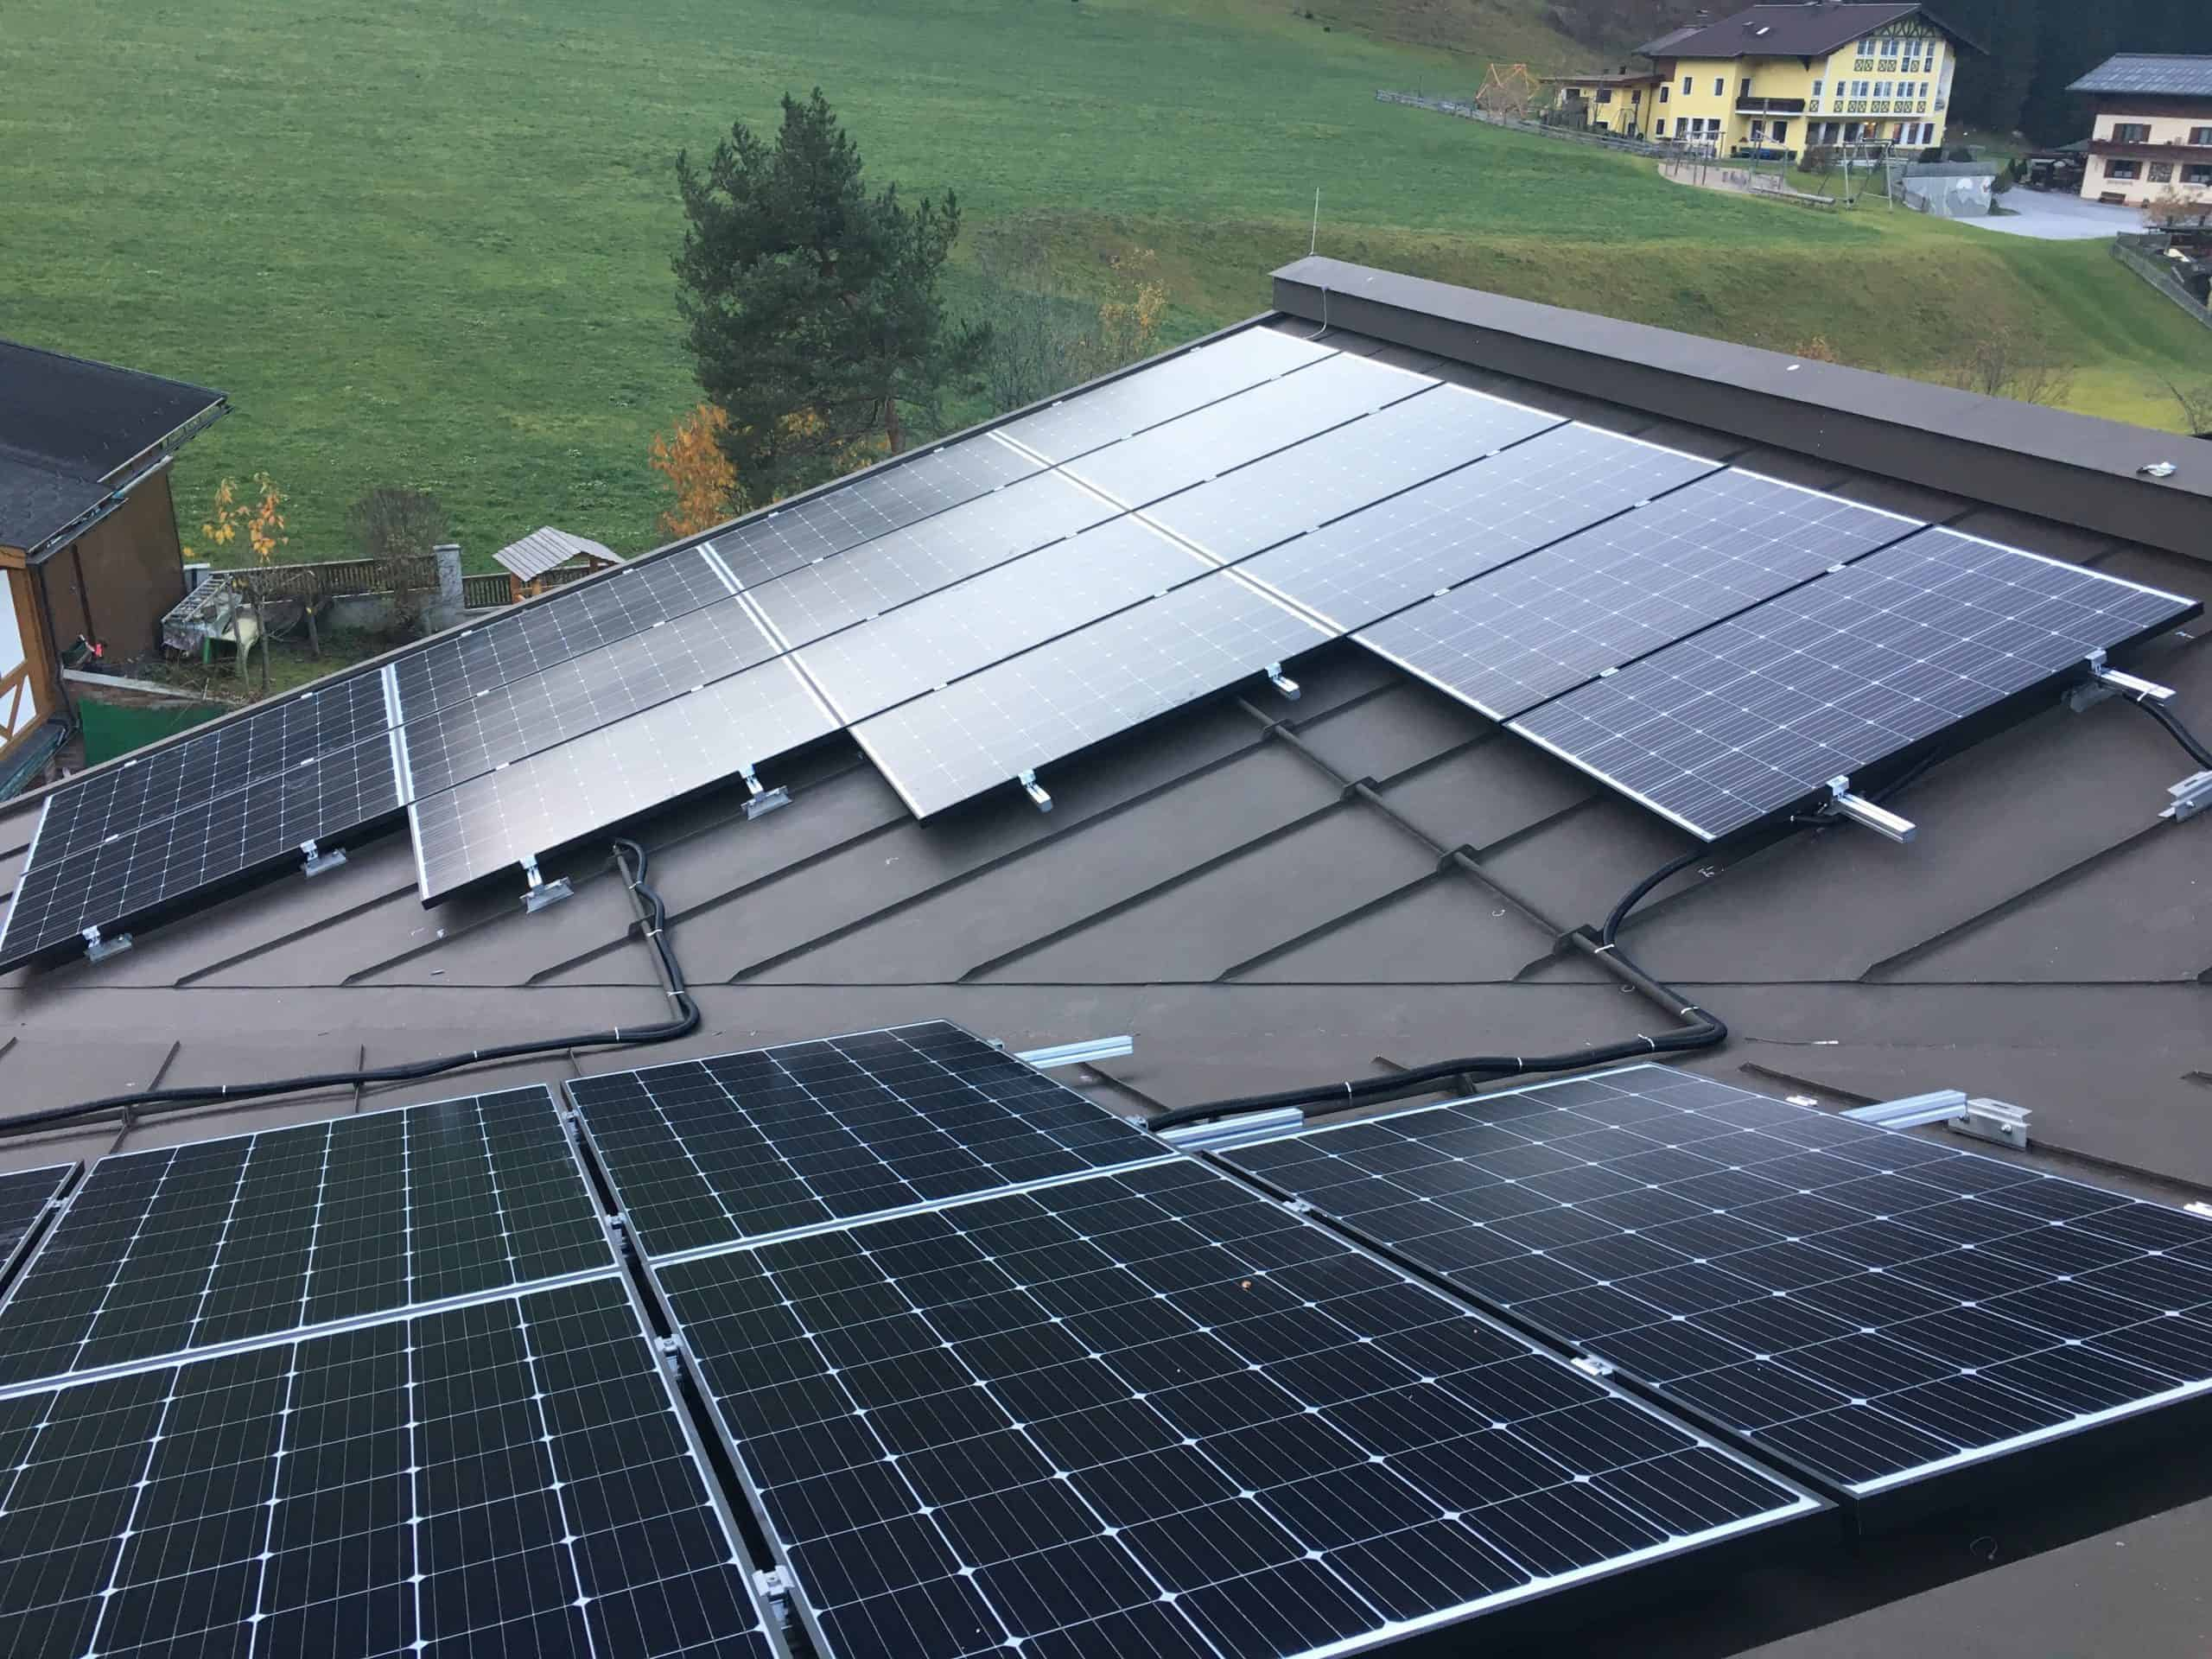 Here you can see the photovoltaic system from the Hotel Ennskraxblick in Kleinarl.